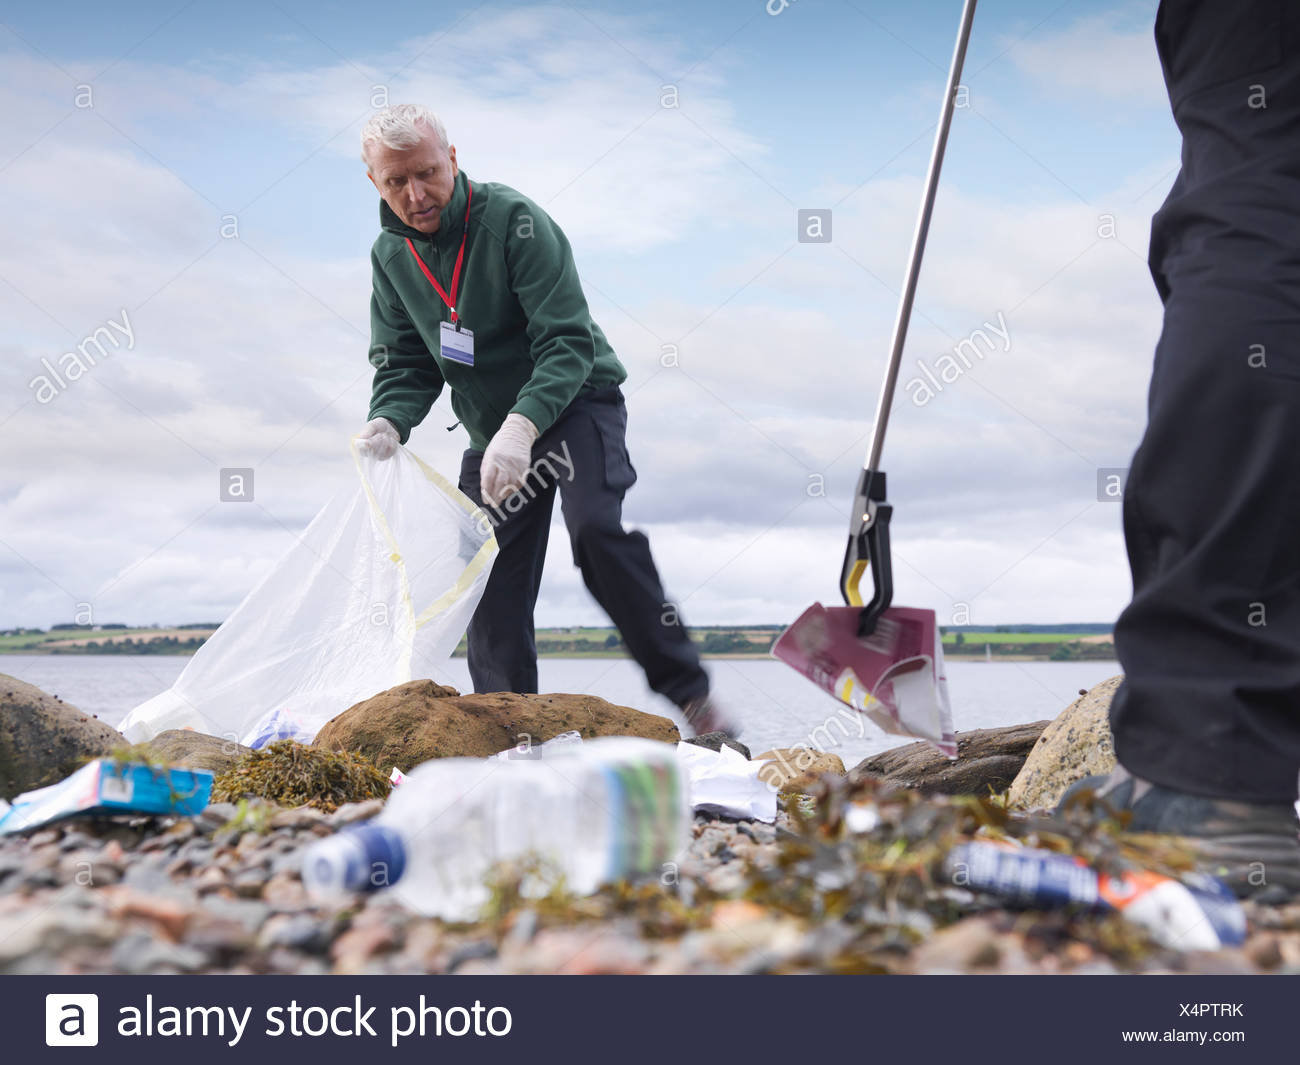 Environmentalist cleaning up beach - Stock Image